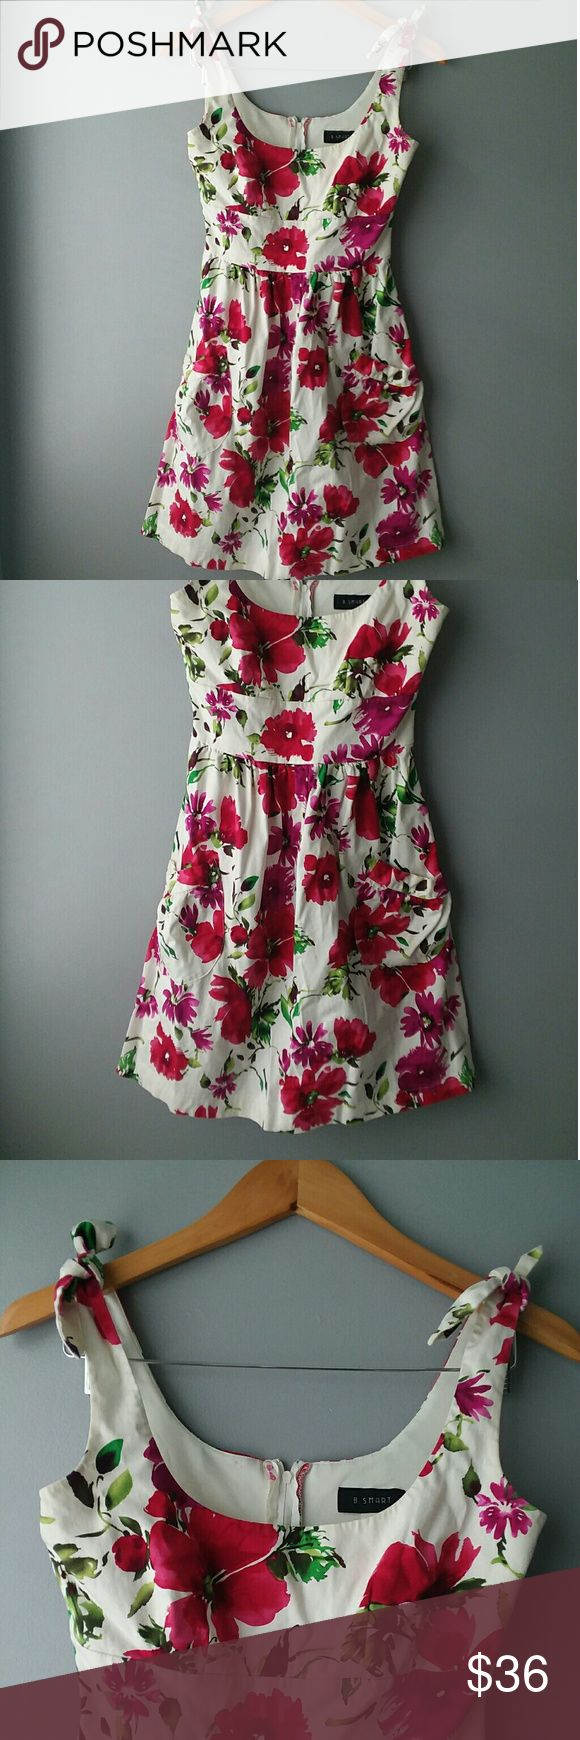 B. Smart floral dress red 2 front pockets Floral with 2 small front pockets. Purple, green, and red flower pattern.Great for spring or summer BBQs. Great condition. Sleeves tie. B. Smart Dresses Mini